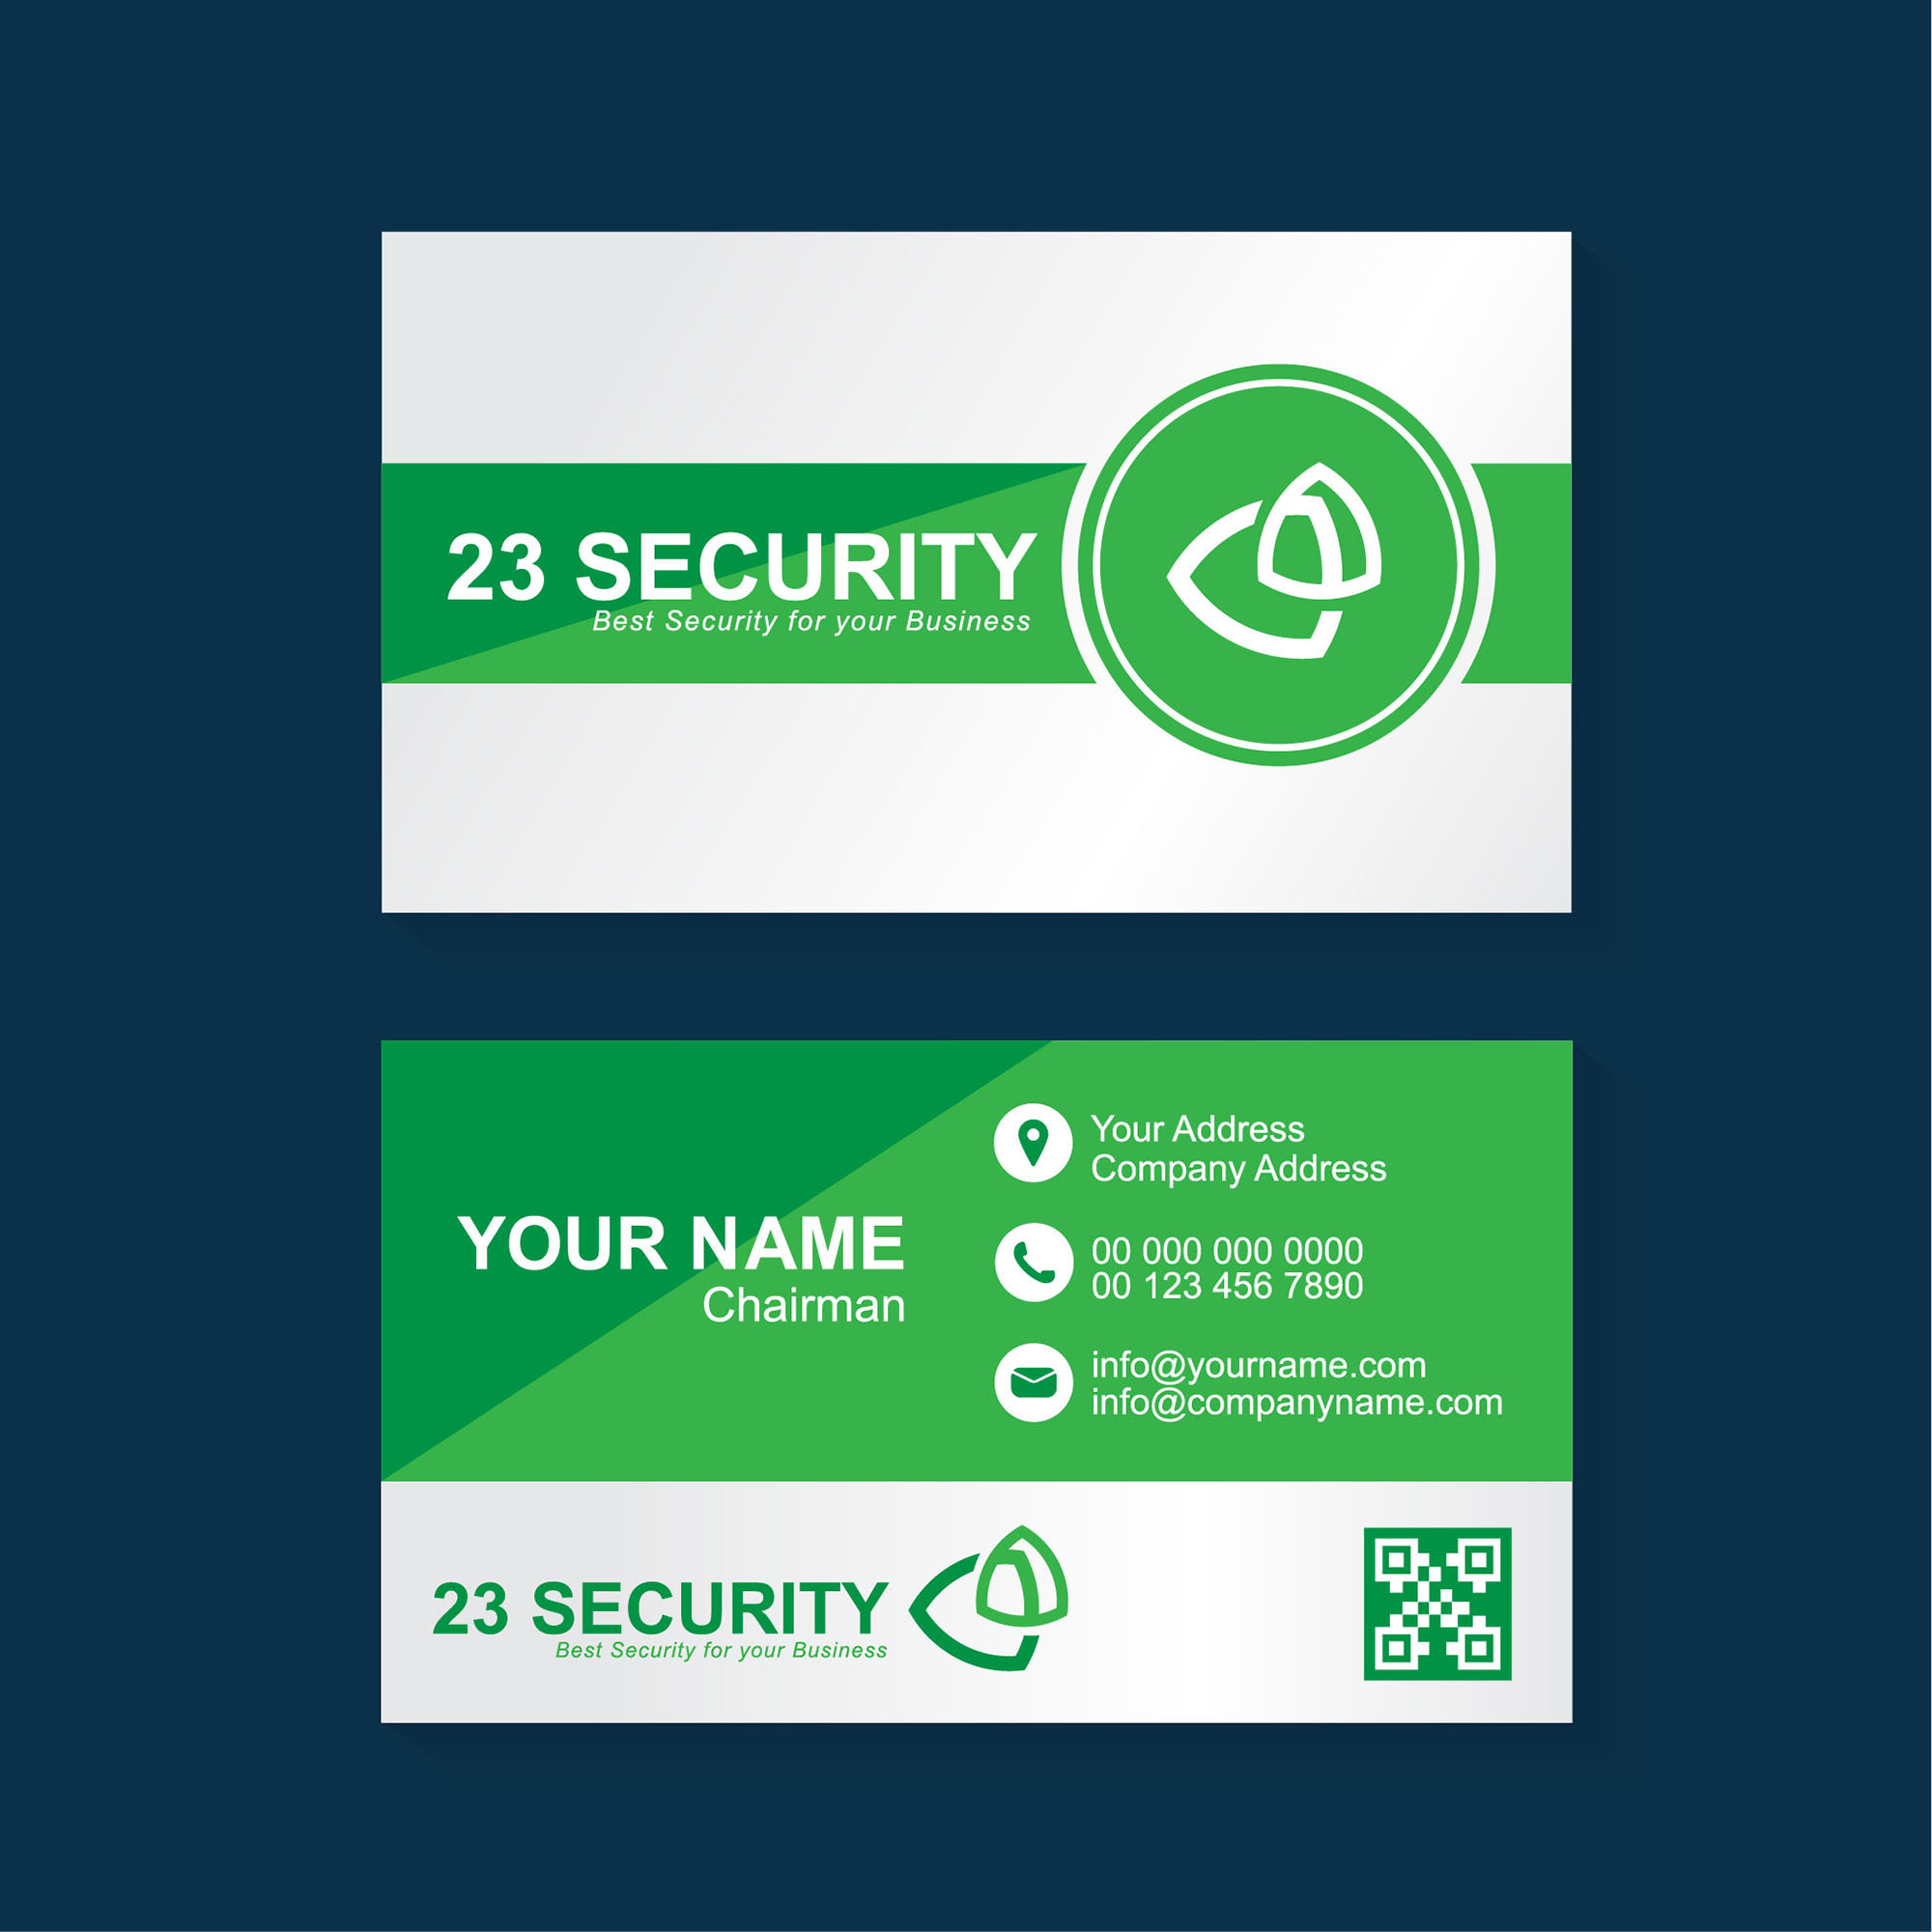 Security Business Card Template Free Download Wisxicom - Free business card layout template